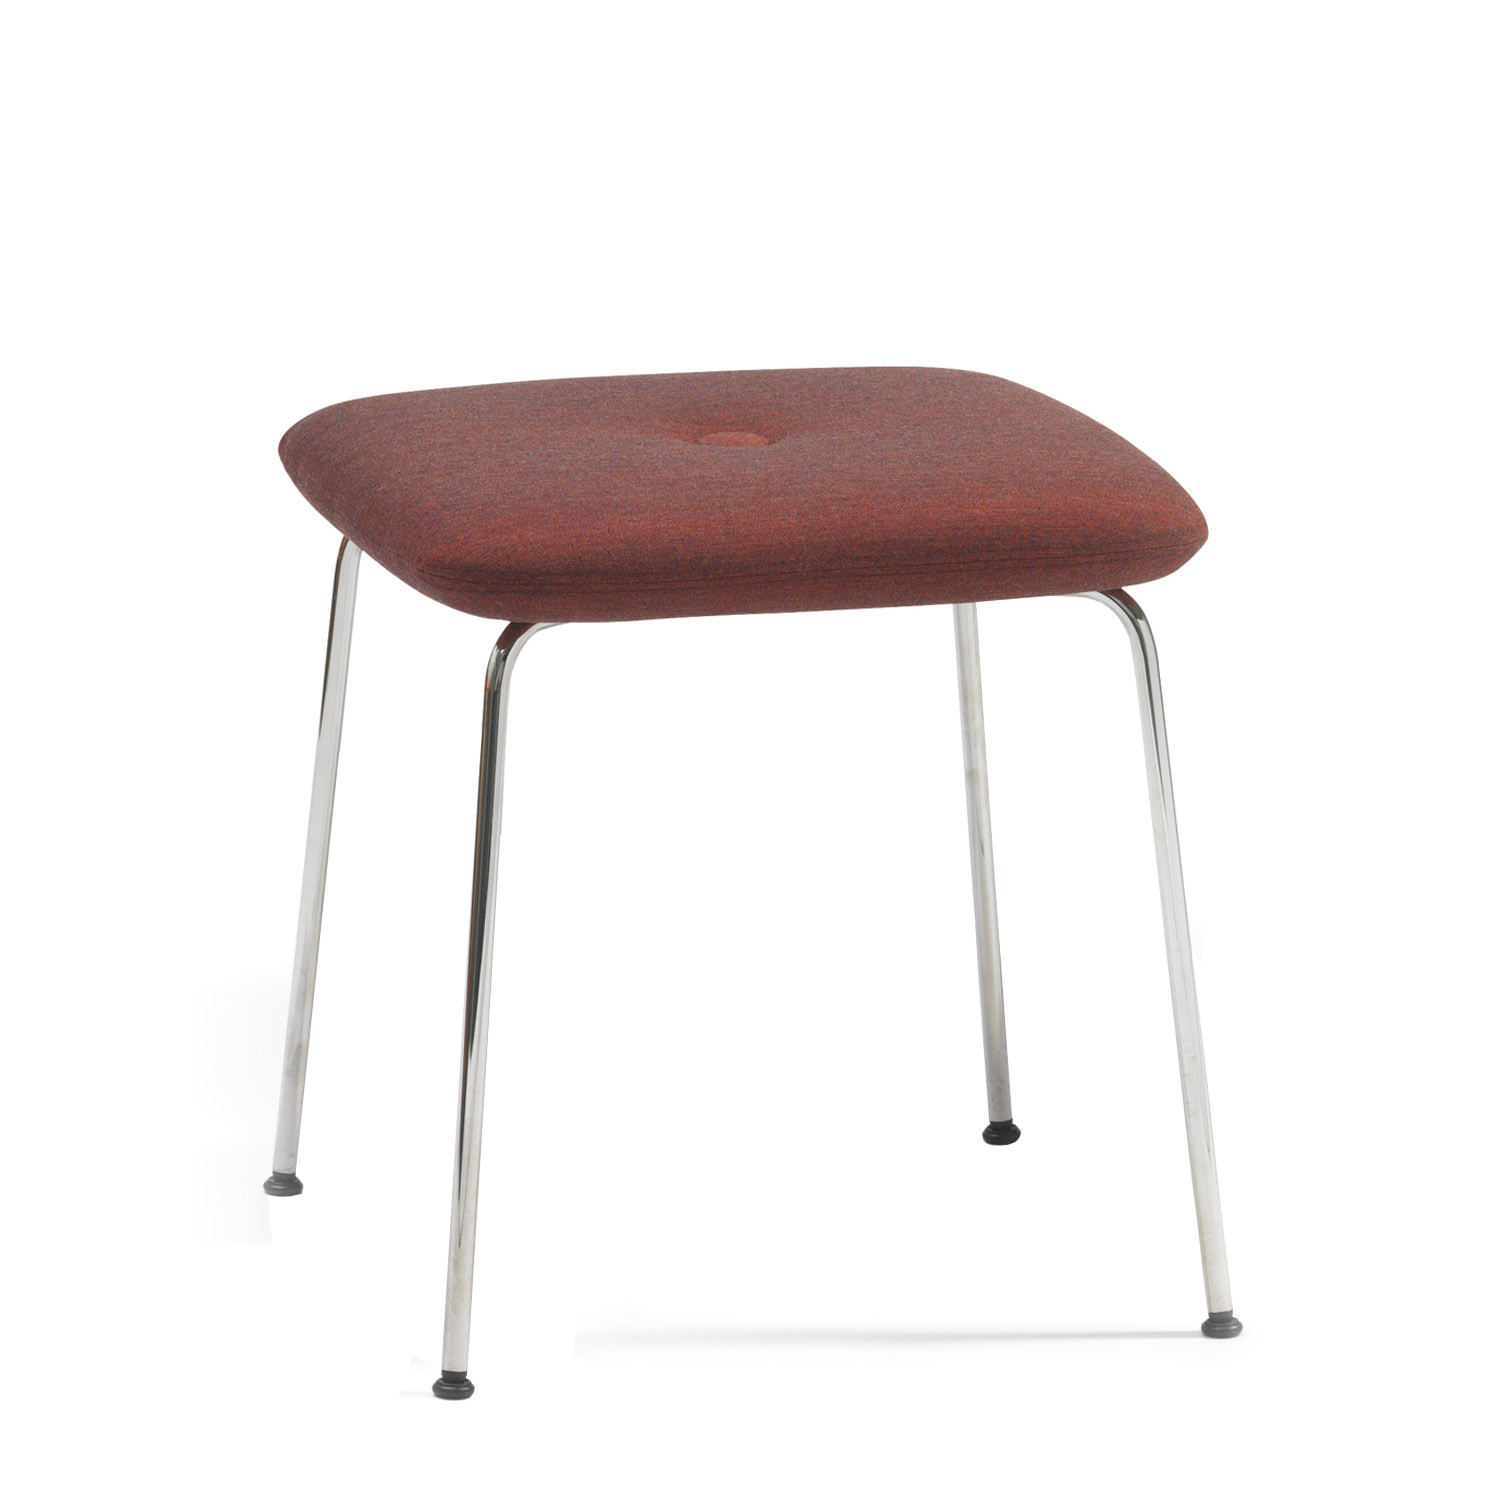 Dundra Low Stool